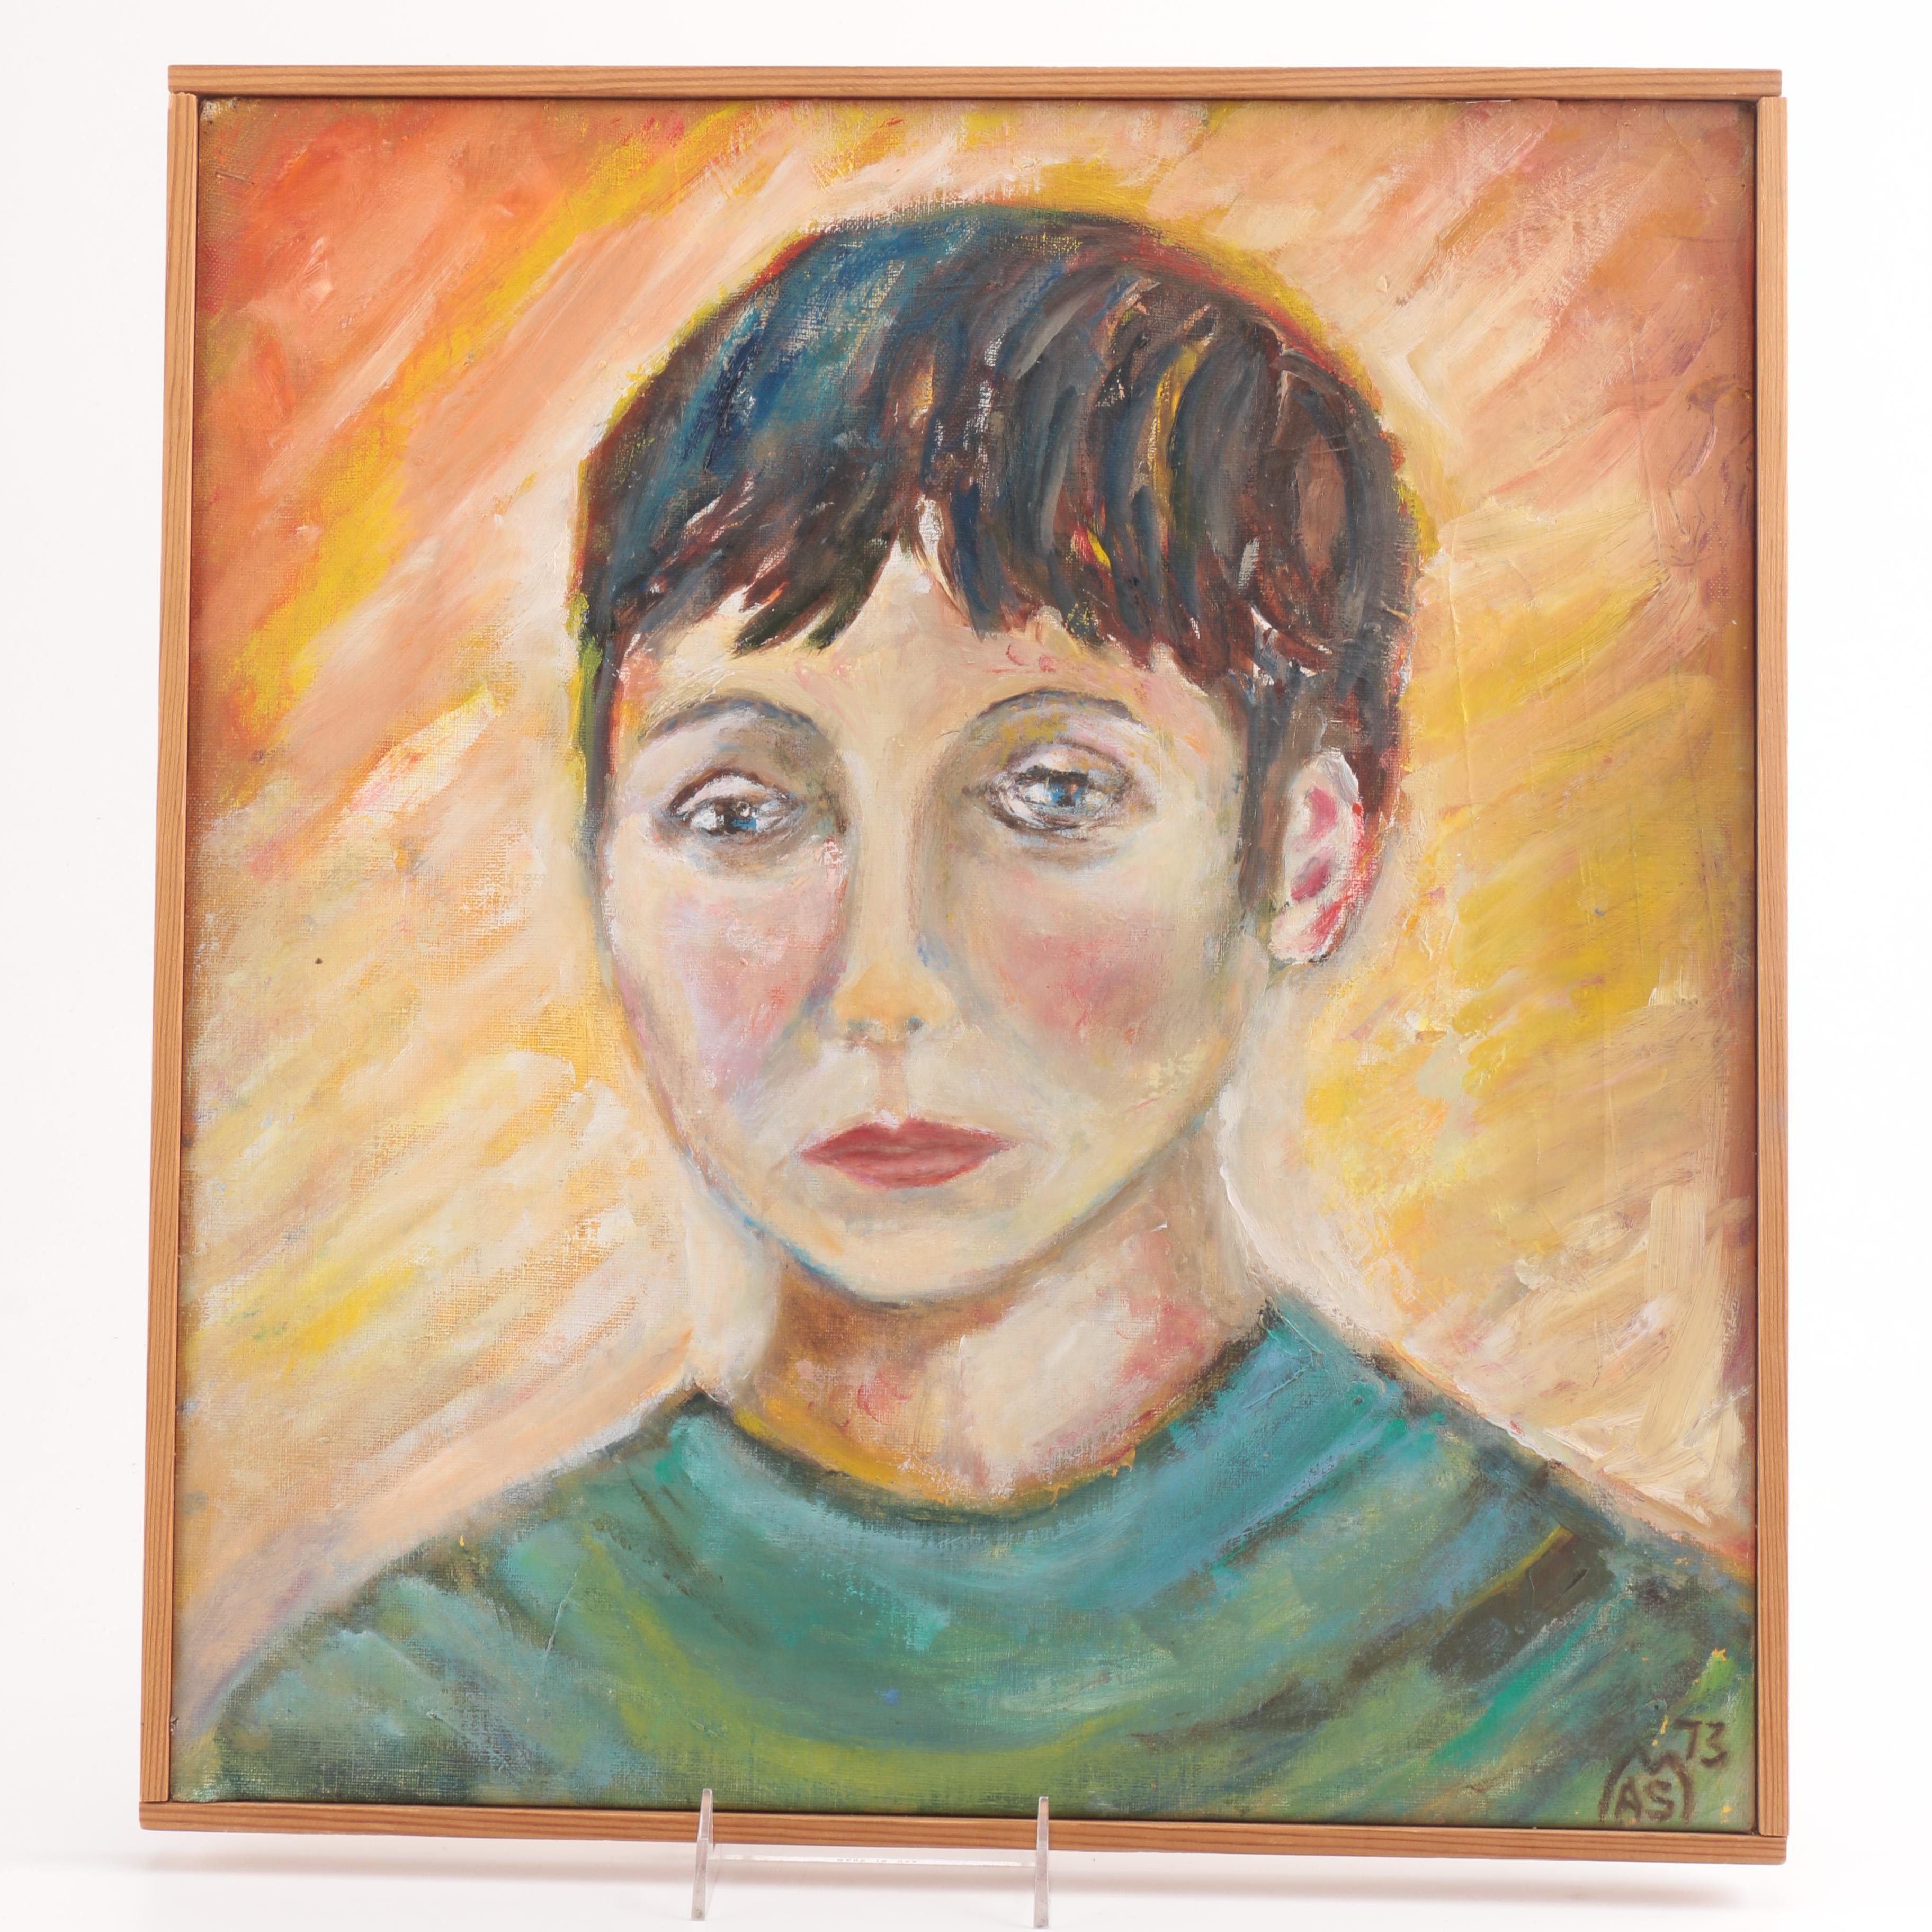 1973 Oil Portrait on Canvas of Melancholy Woman in Green